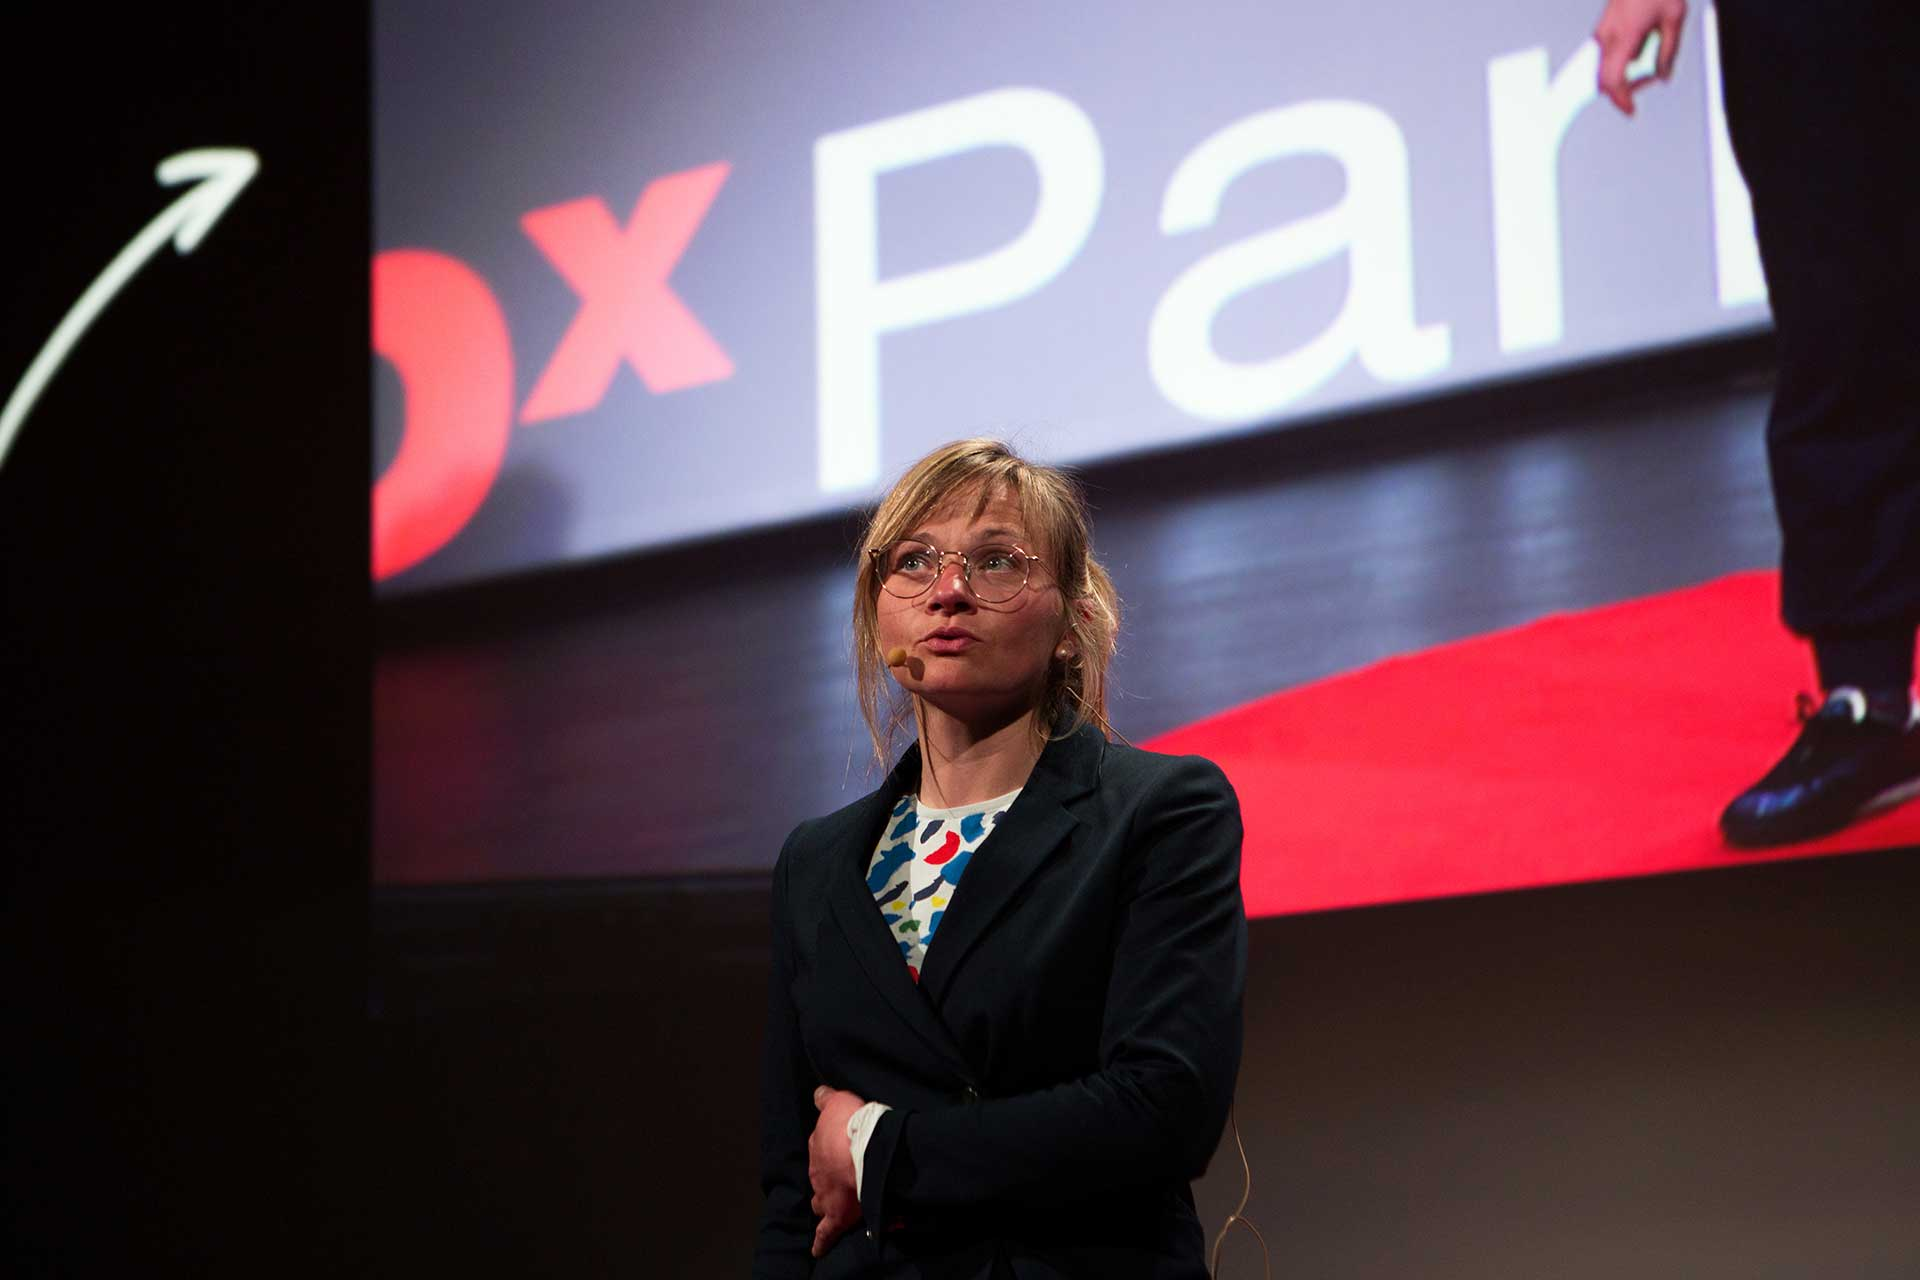 conference-TEDxParisSalon-2019-2.jpg